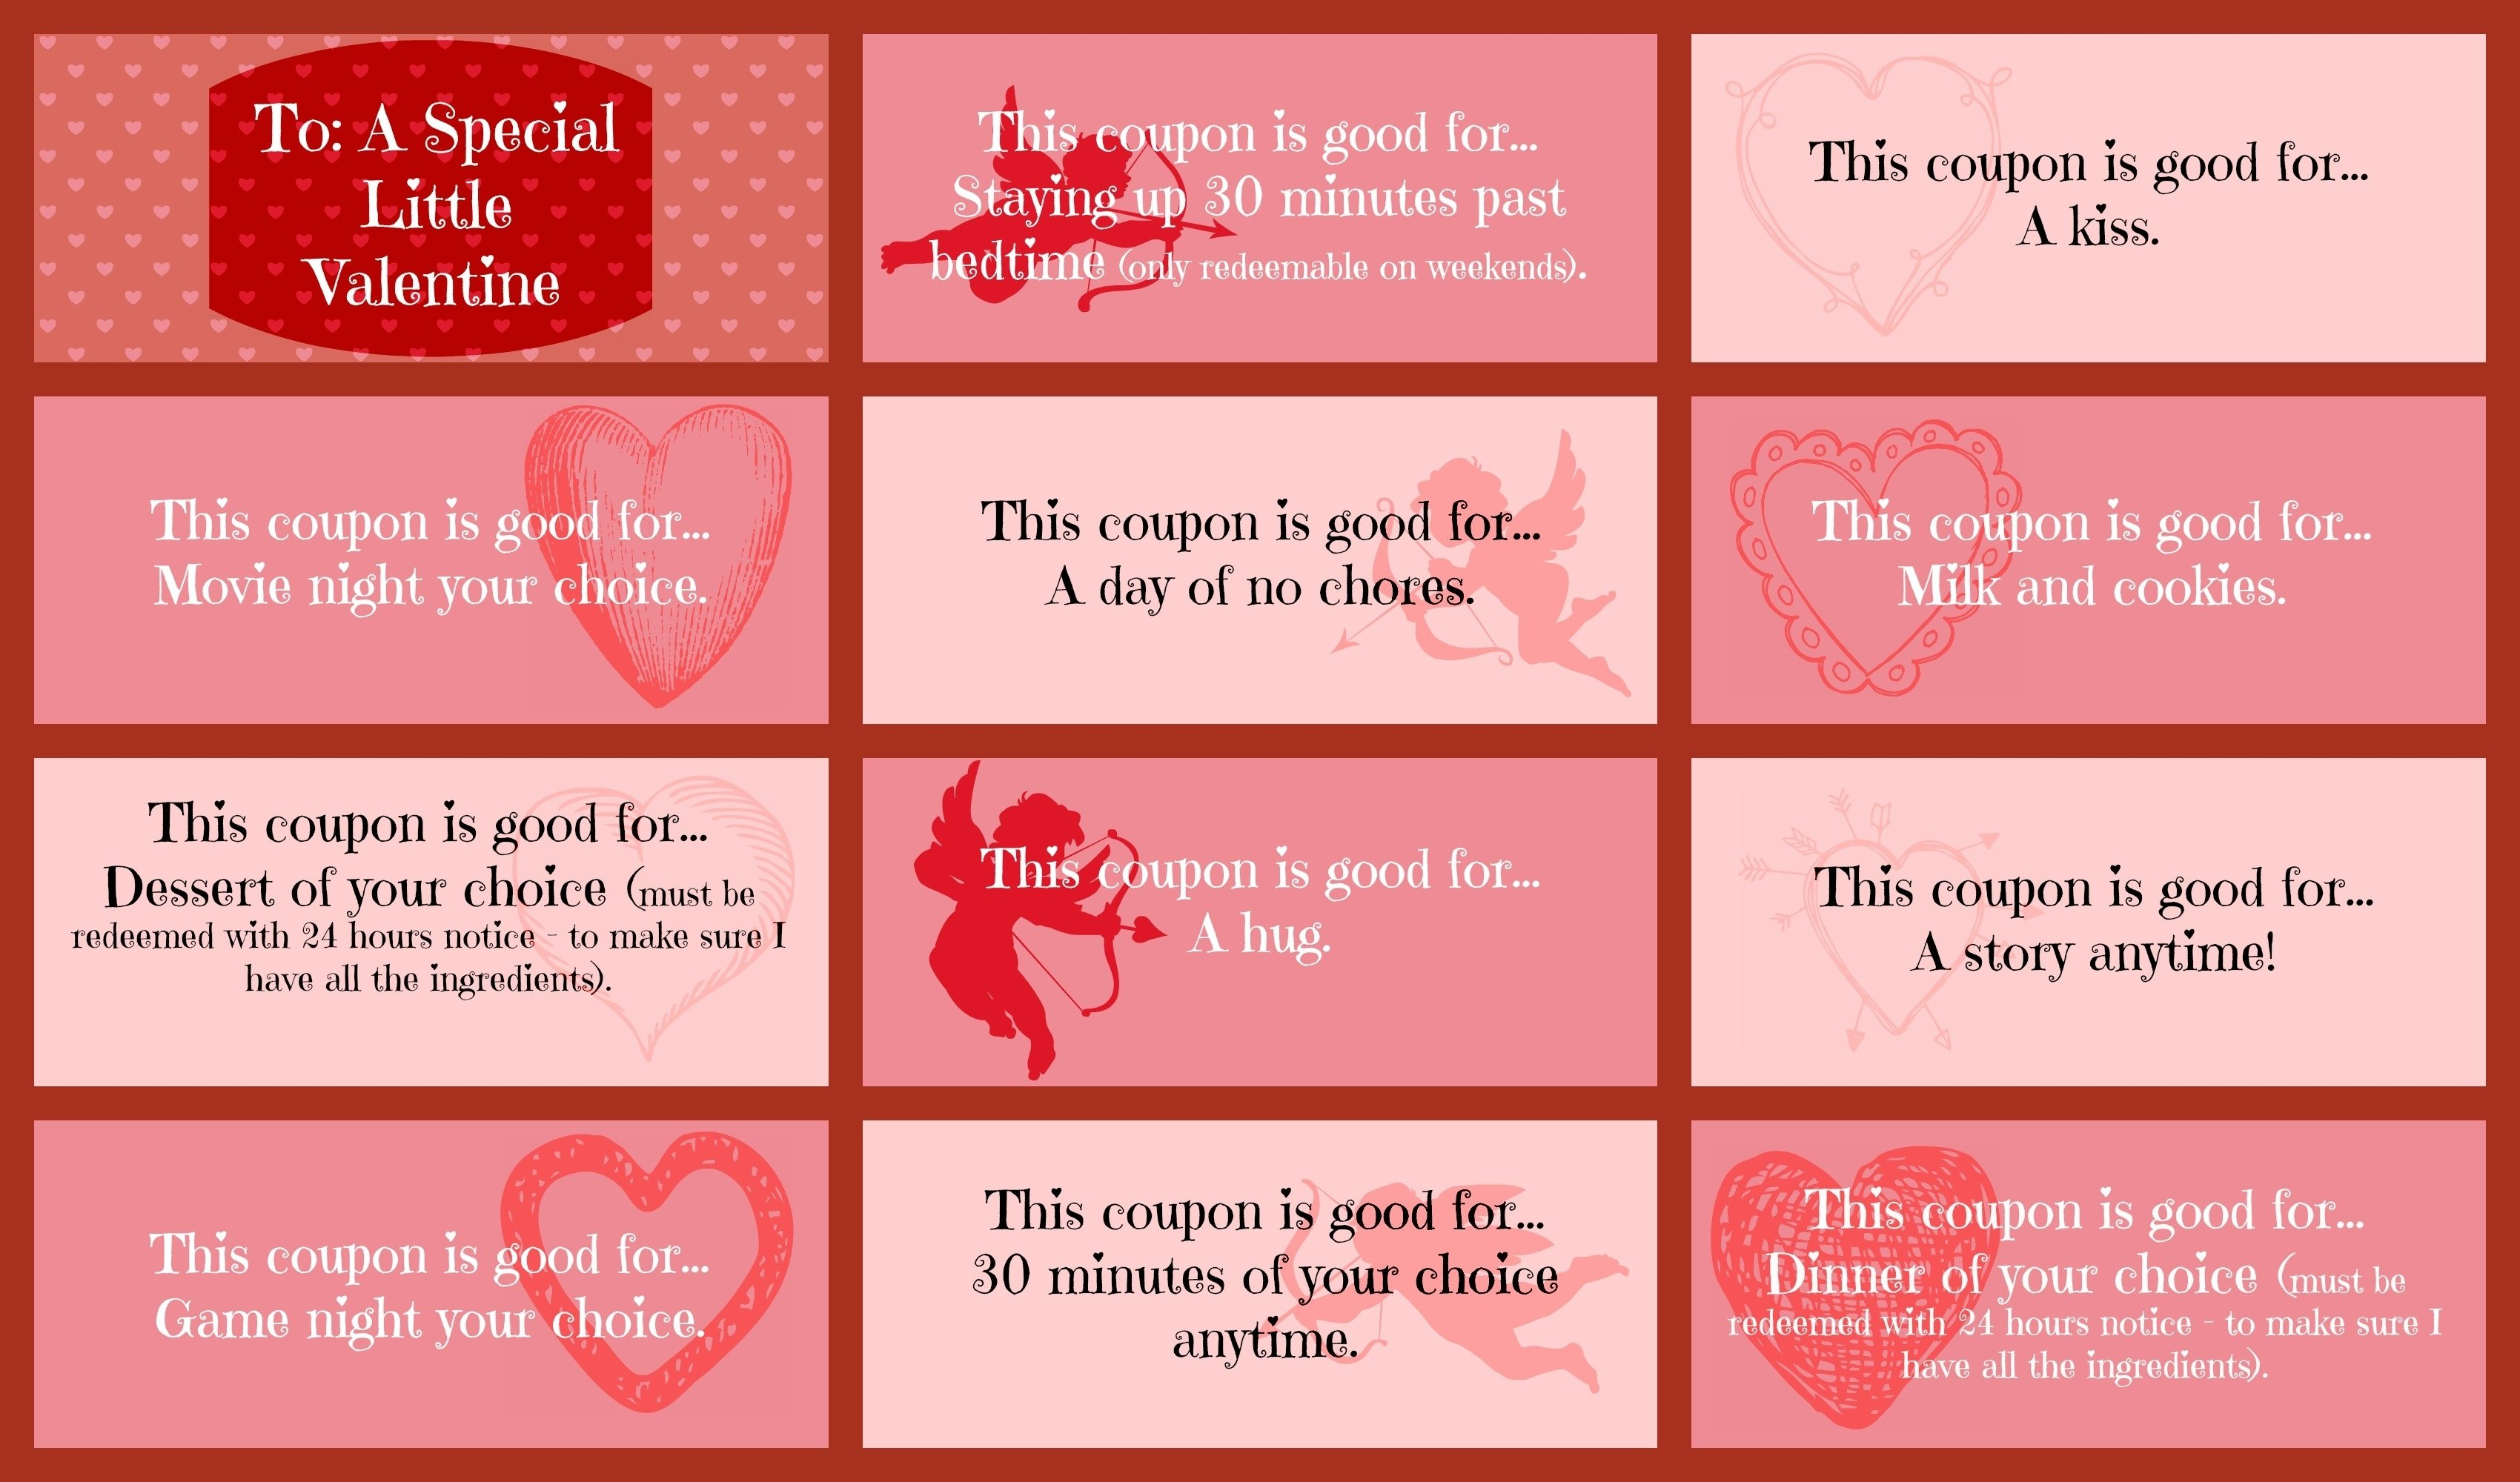 10 Attractive Valentine Coupon Book Ideas For Guys valentine day coupon book ideas startupcorner co 1 2020